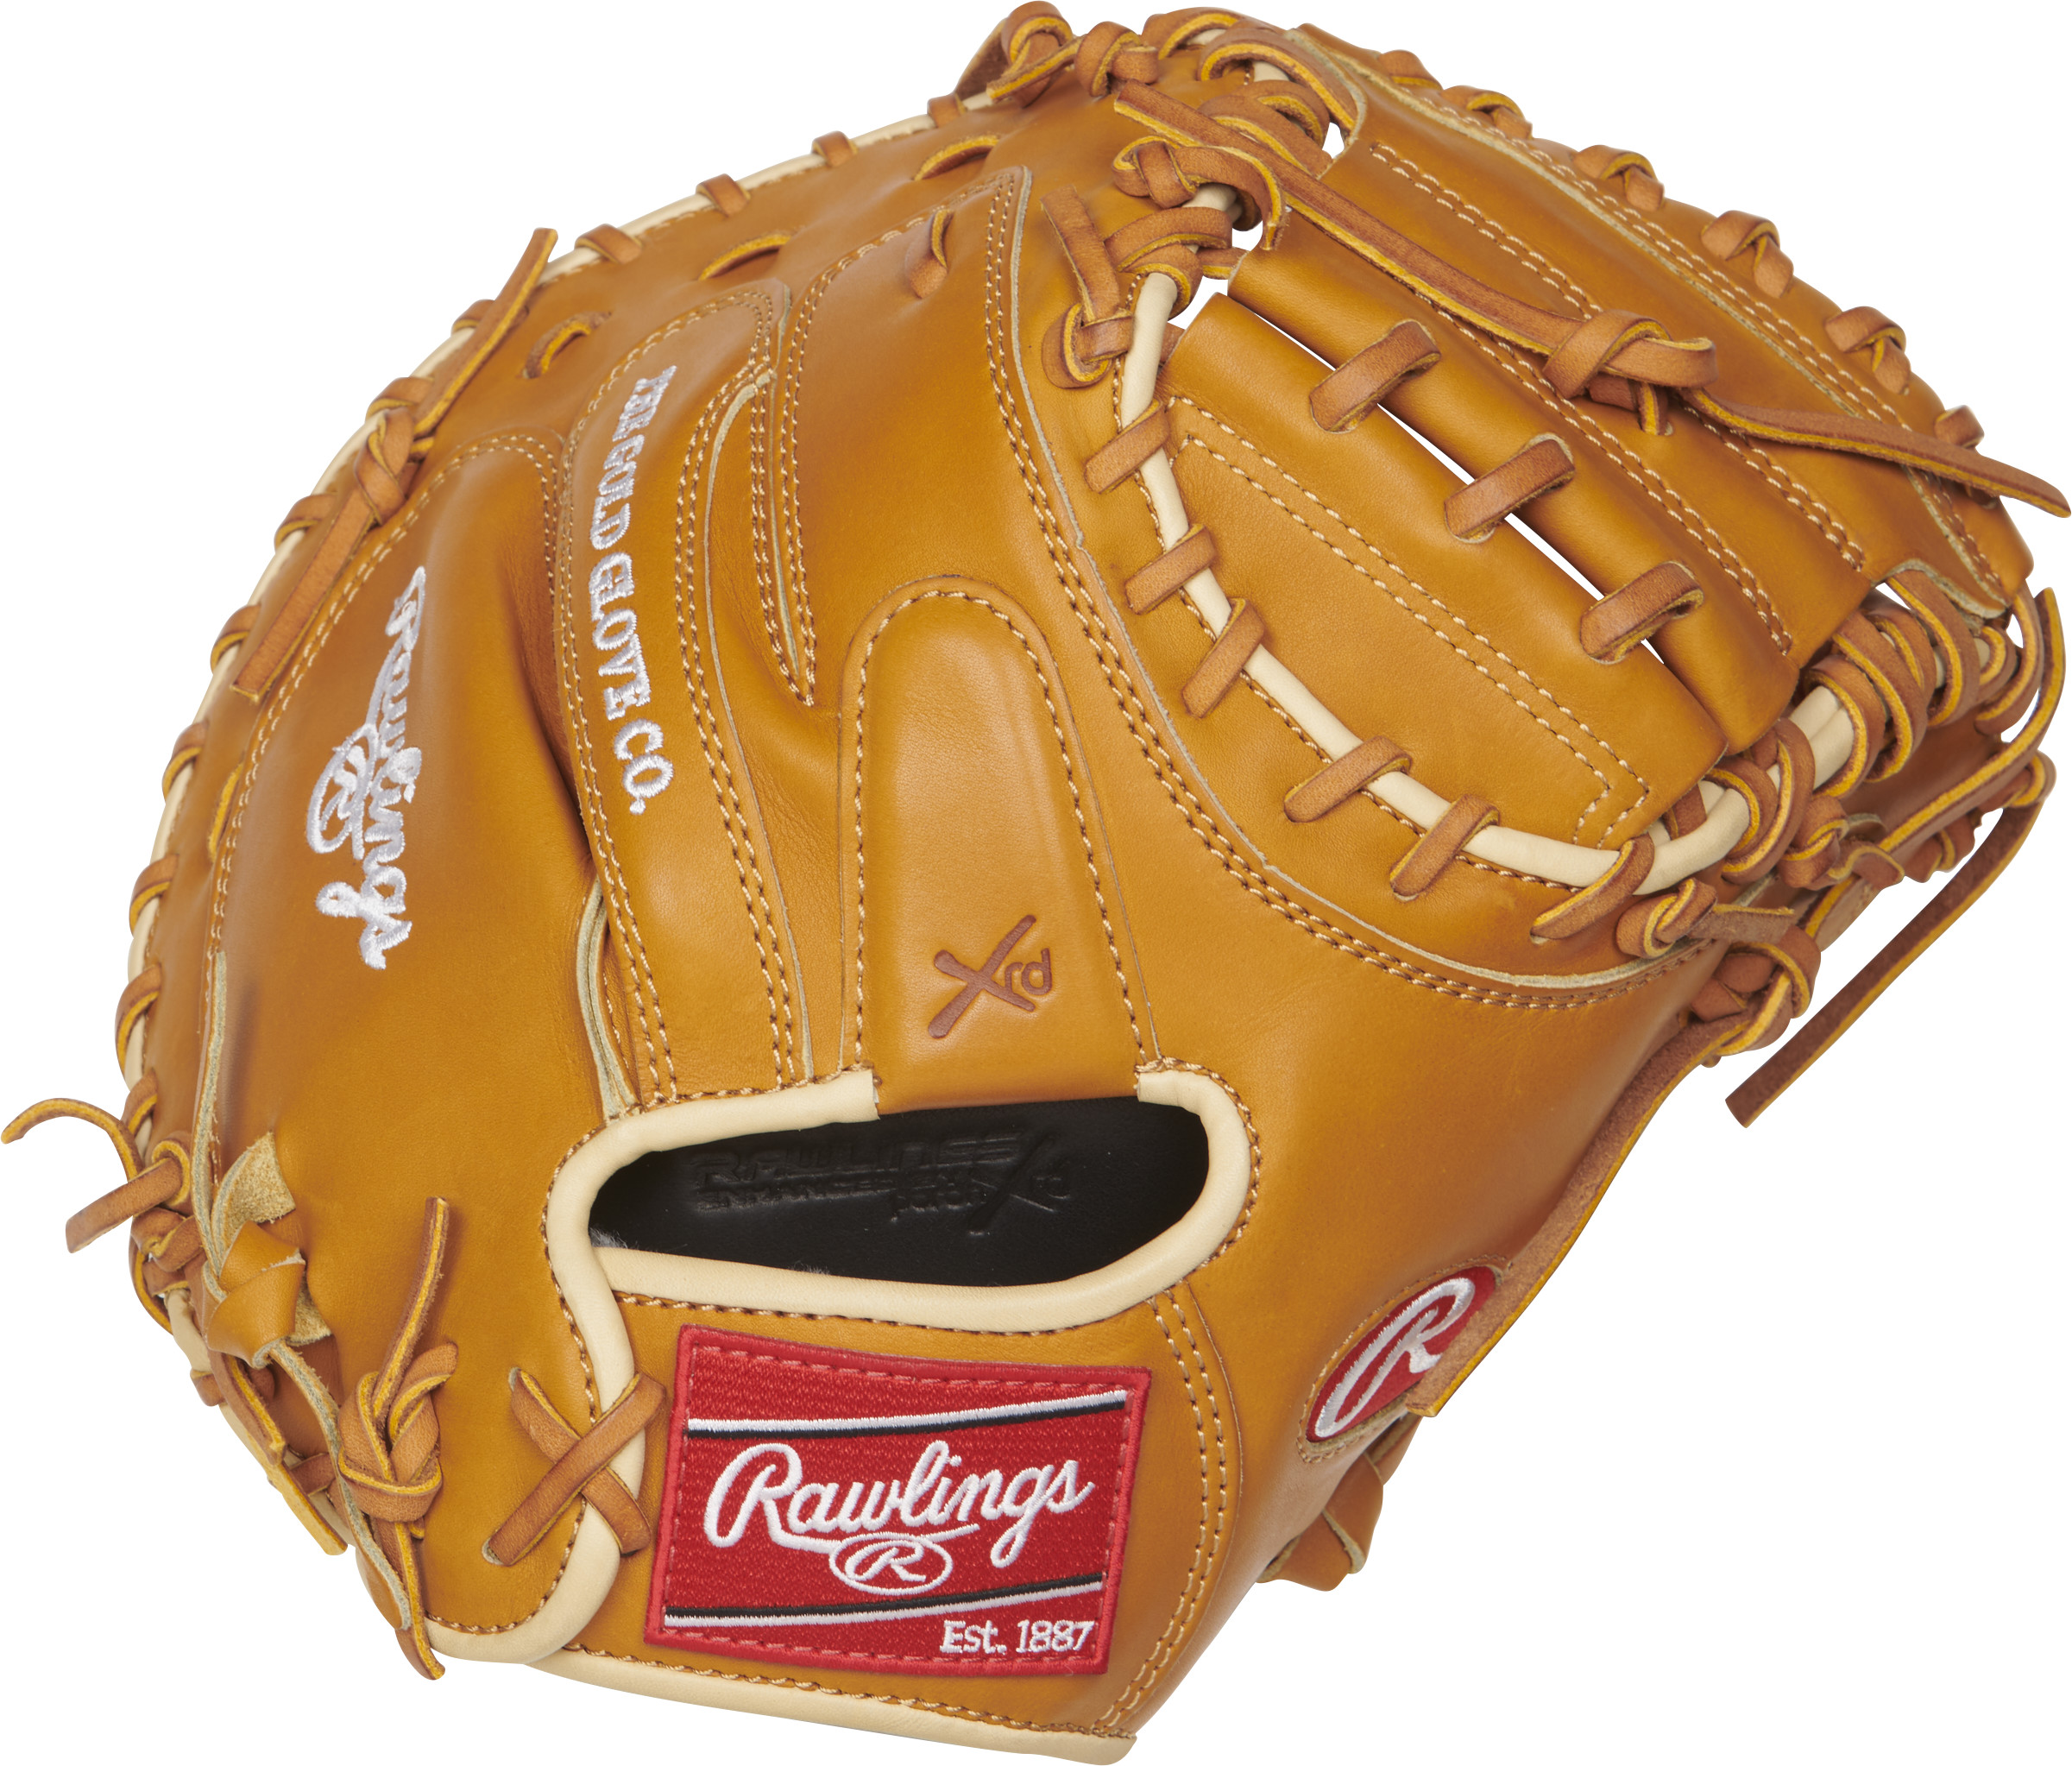 http://www.bestbatdeals.com/images/gloves/rawlings/PROSCM43RT-2.jpg